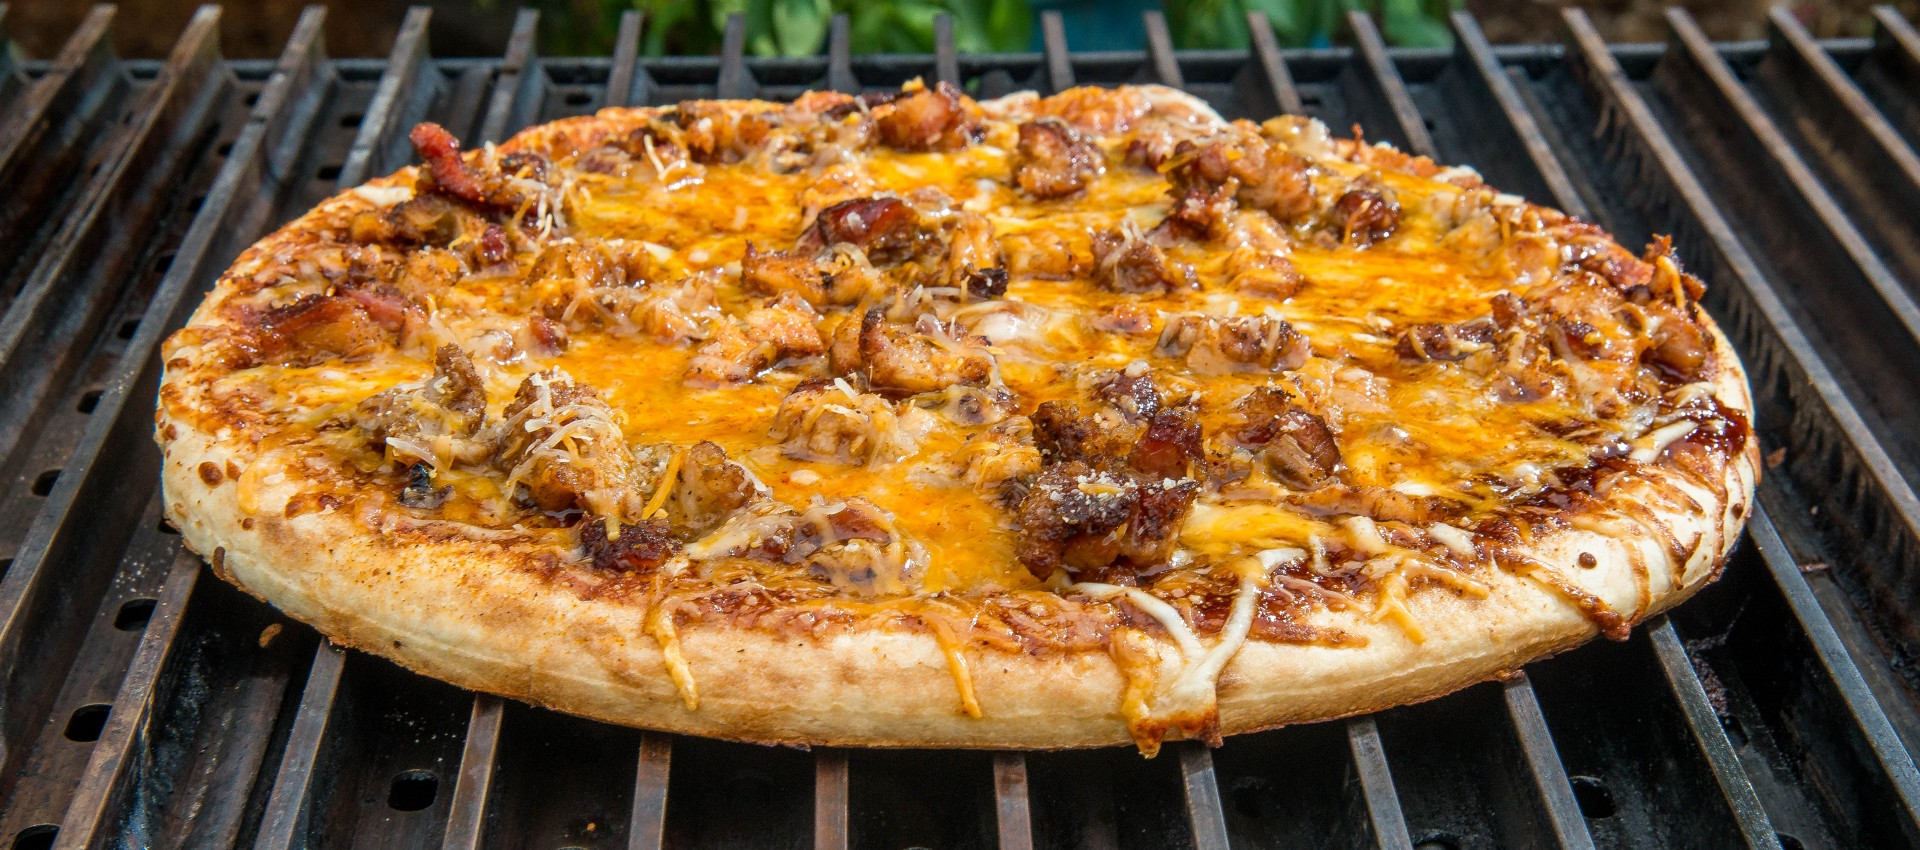 How to Cook Pizza on a Barbecue